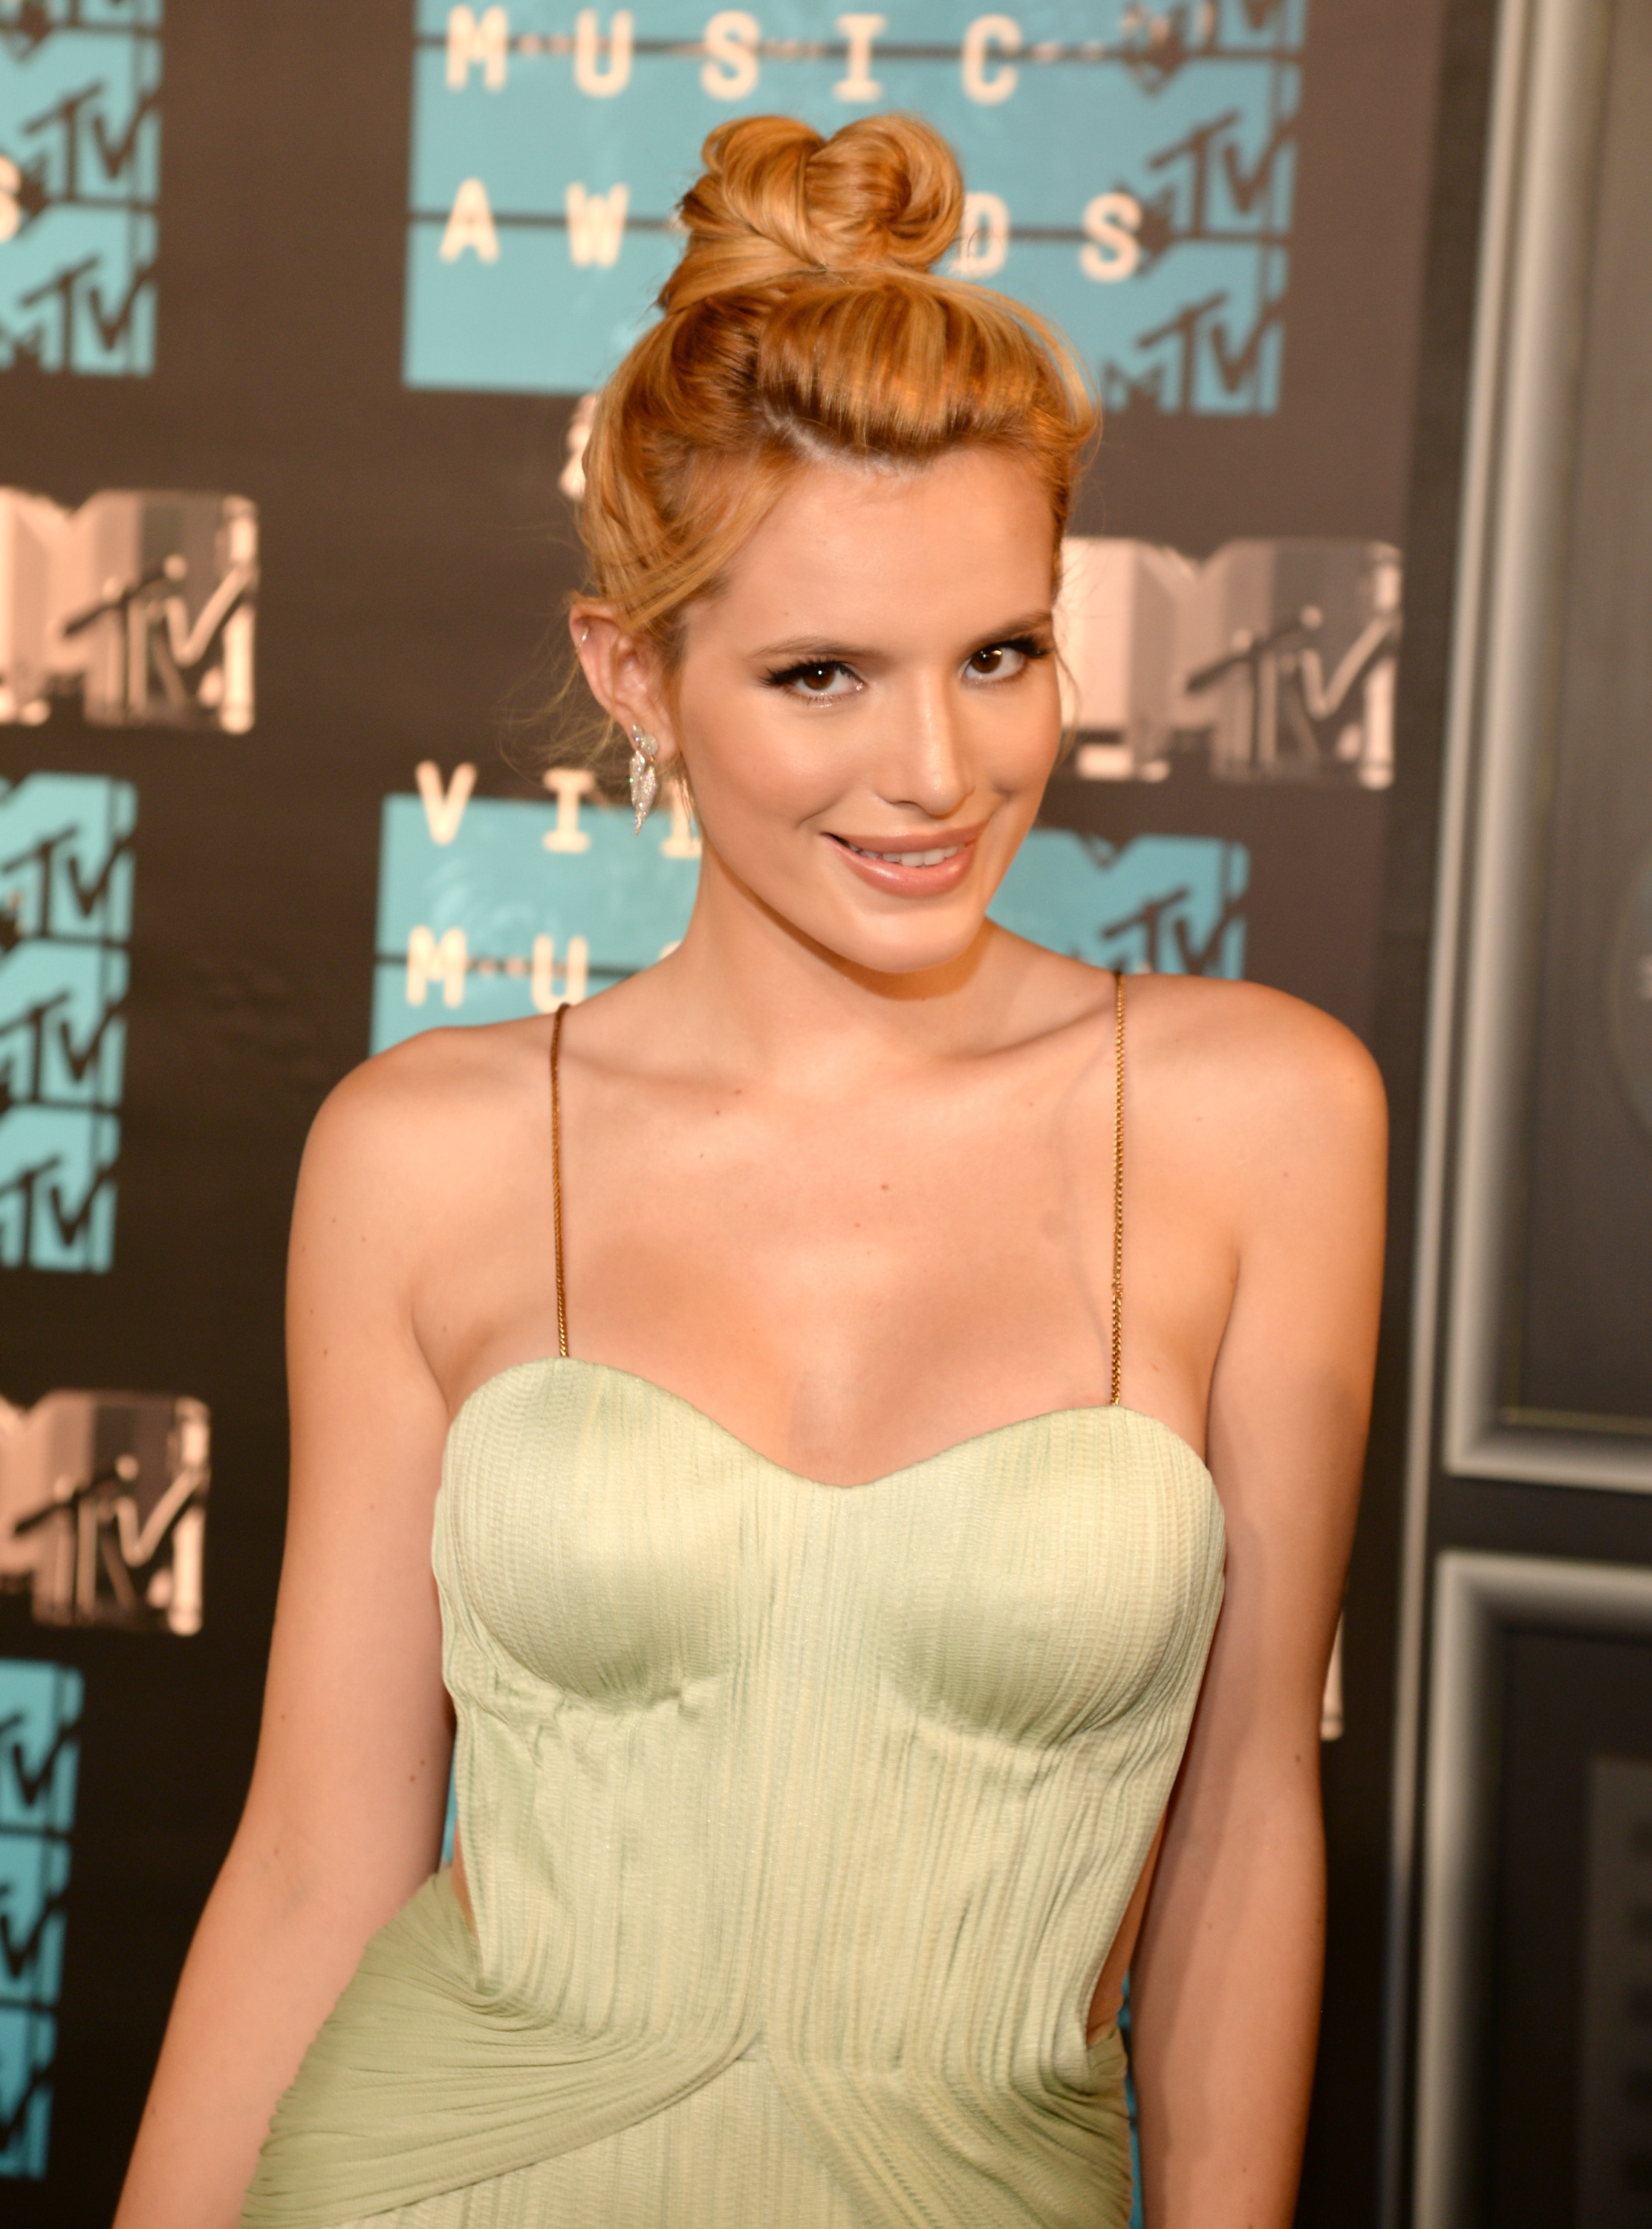 Bella thorne date of birth